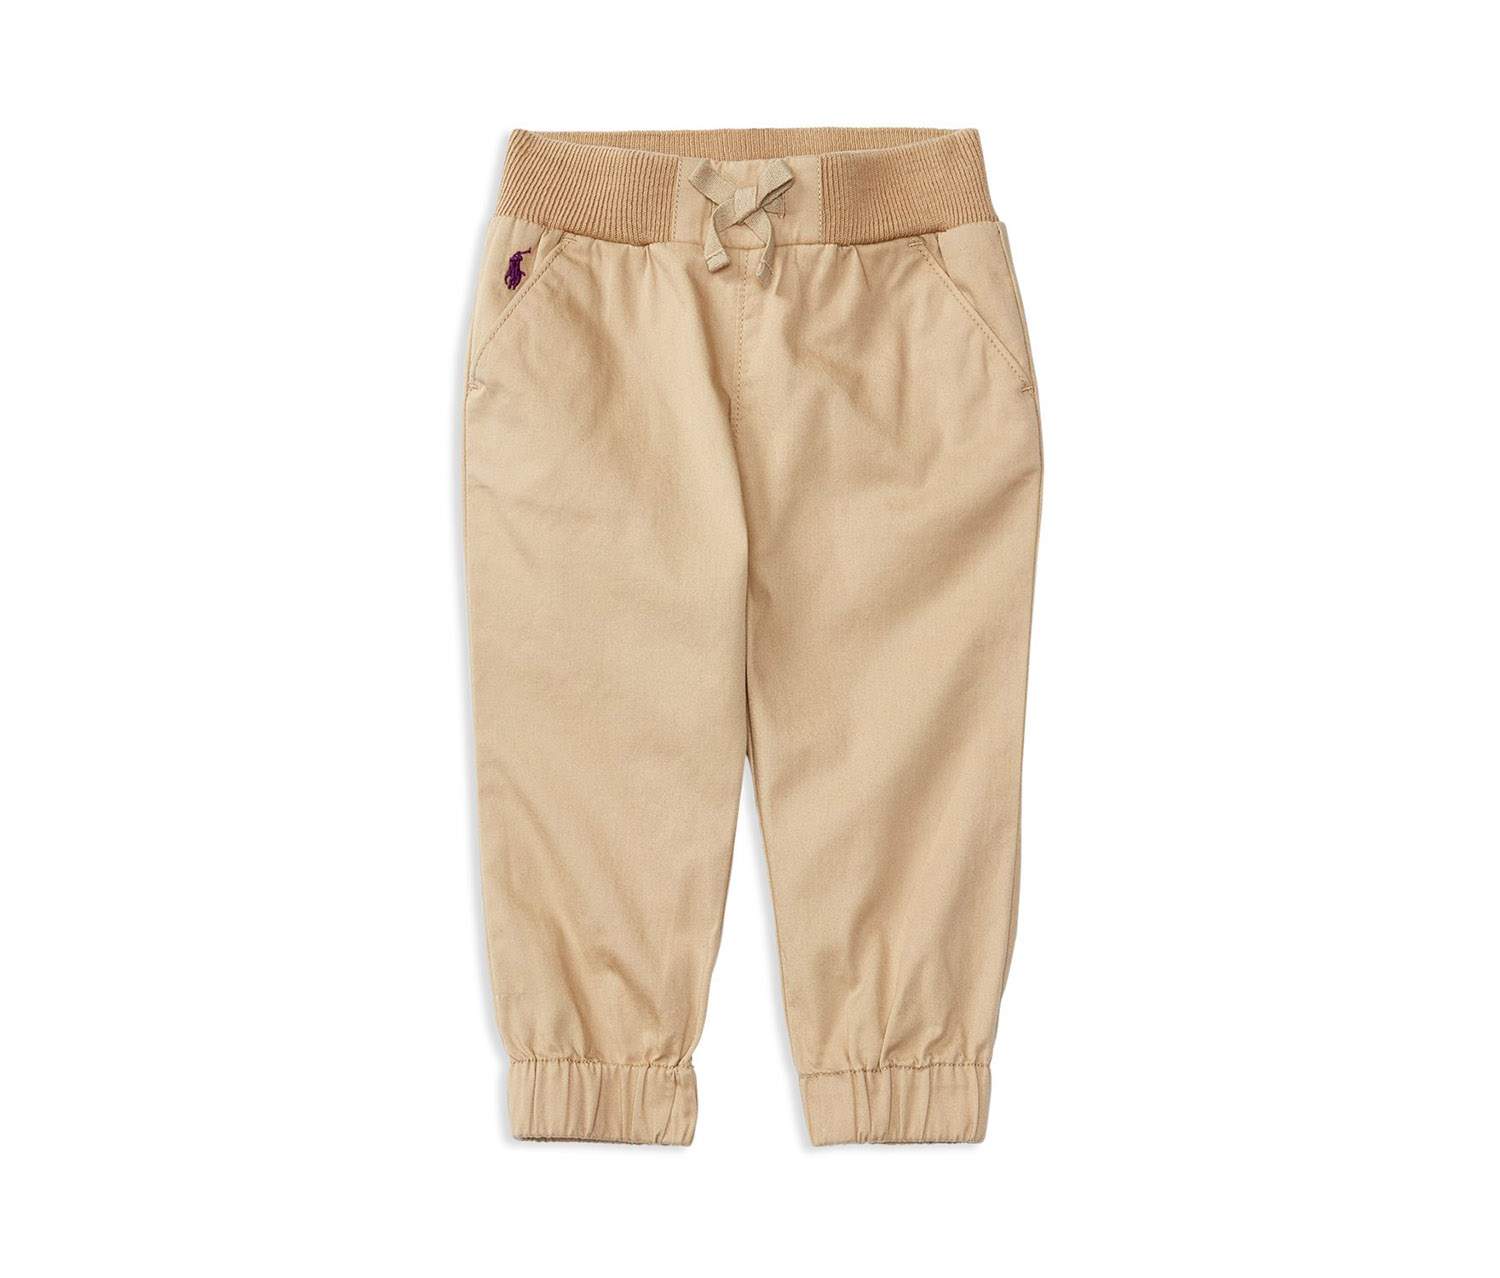 Baby Boy's Pants, Beige